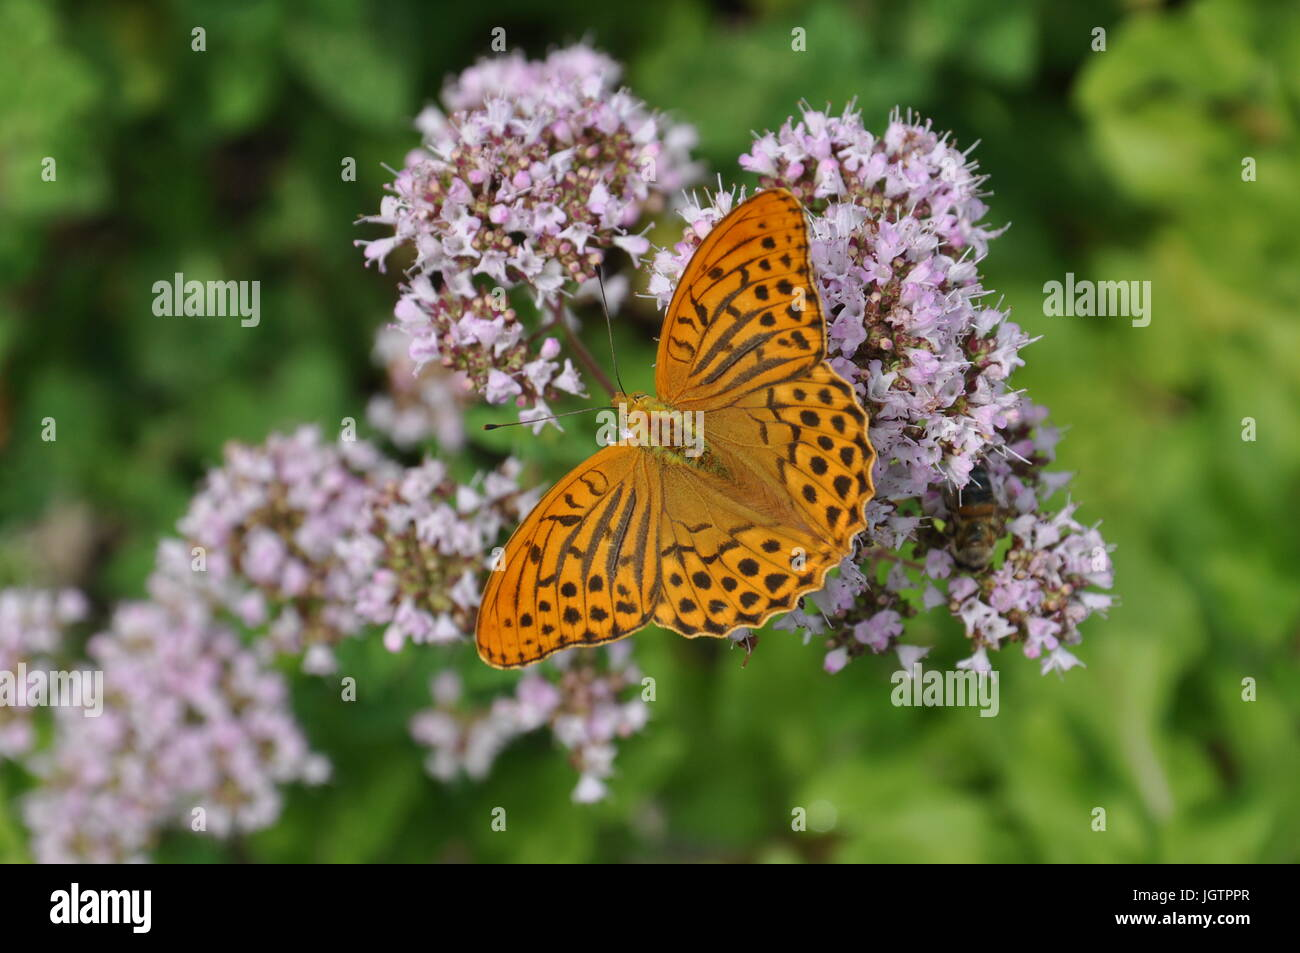 Day butterfly Fleas, insect, animal, nature, Argynnis paphia - Stock Image